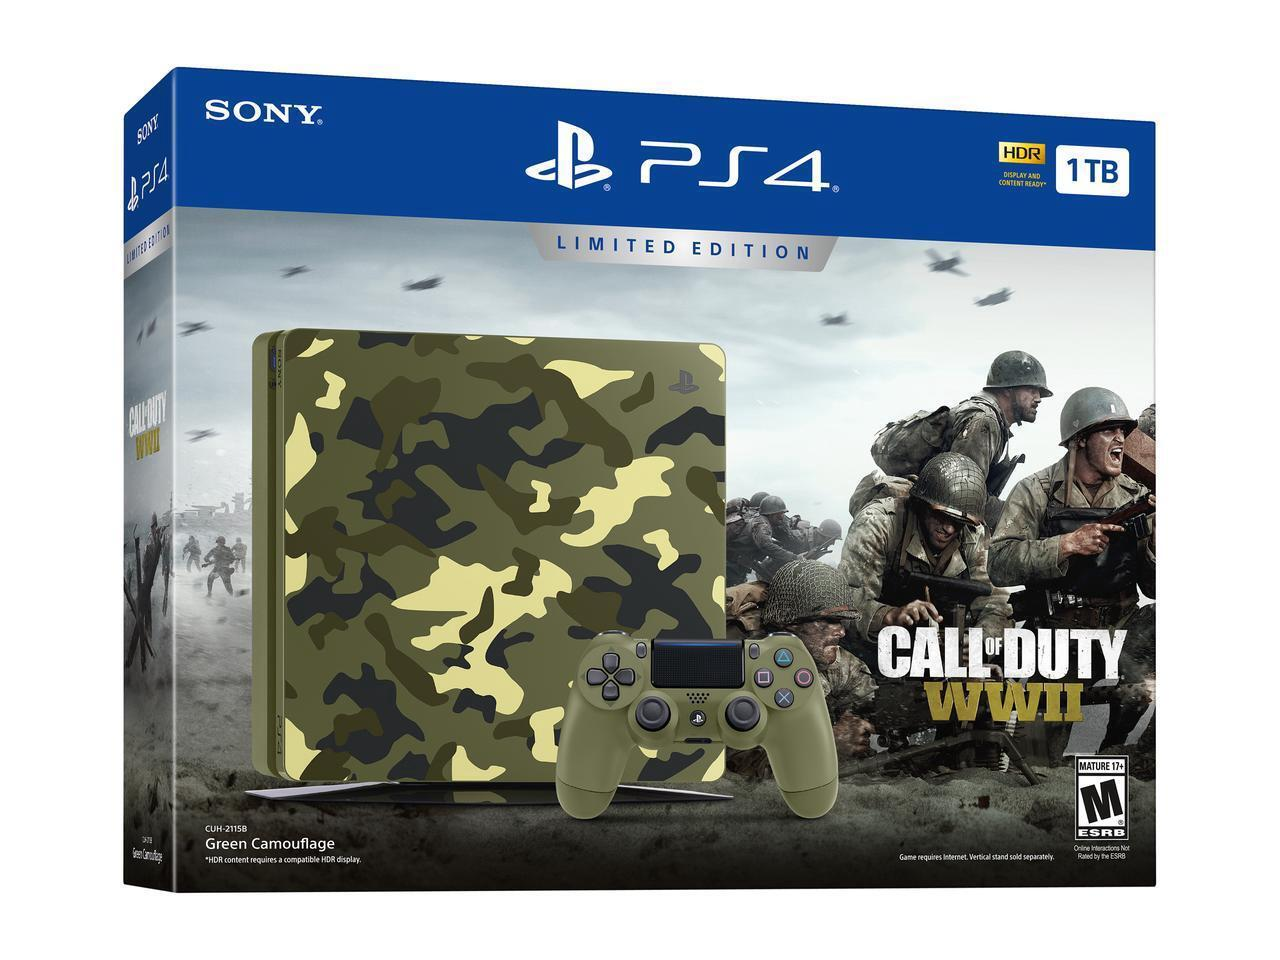 Playstation 4 - Sony PlayStation 4 Slim Call of Duty: WWII Limited Edition 1TB Green Camouflage